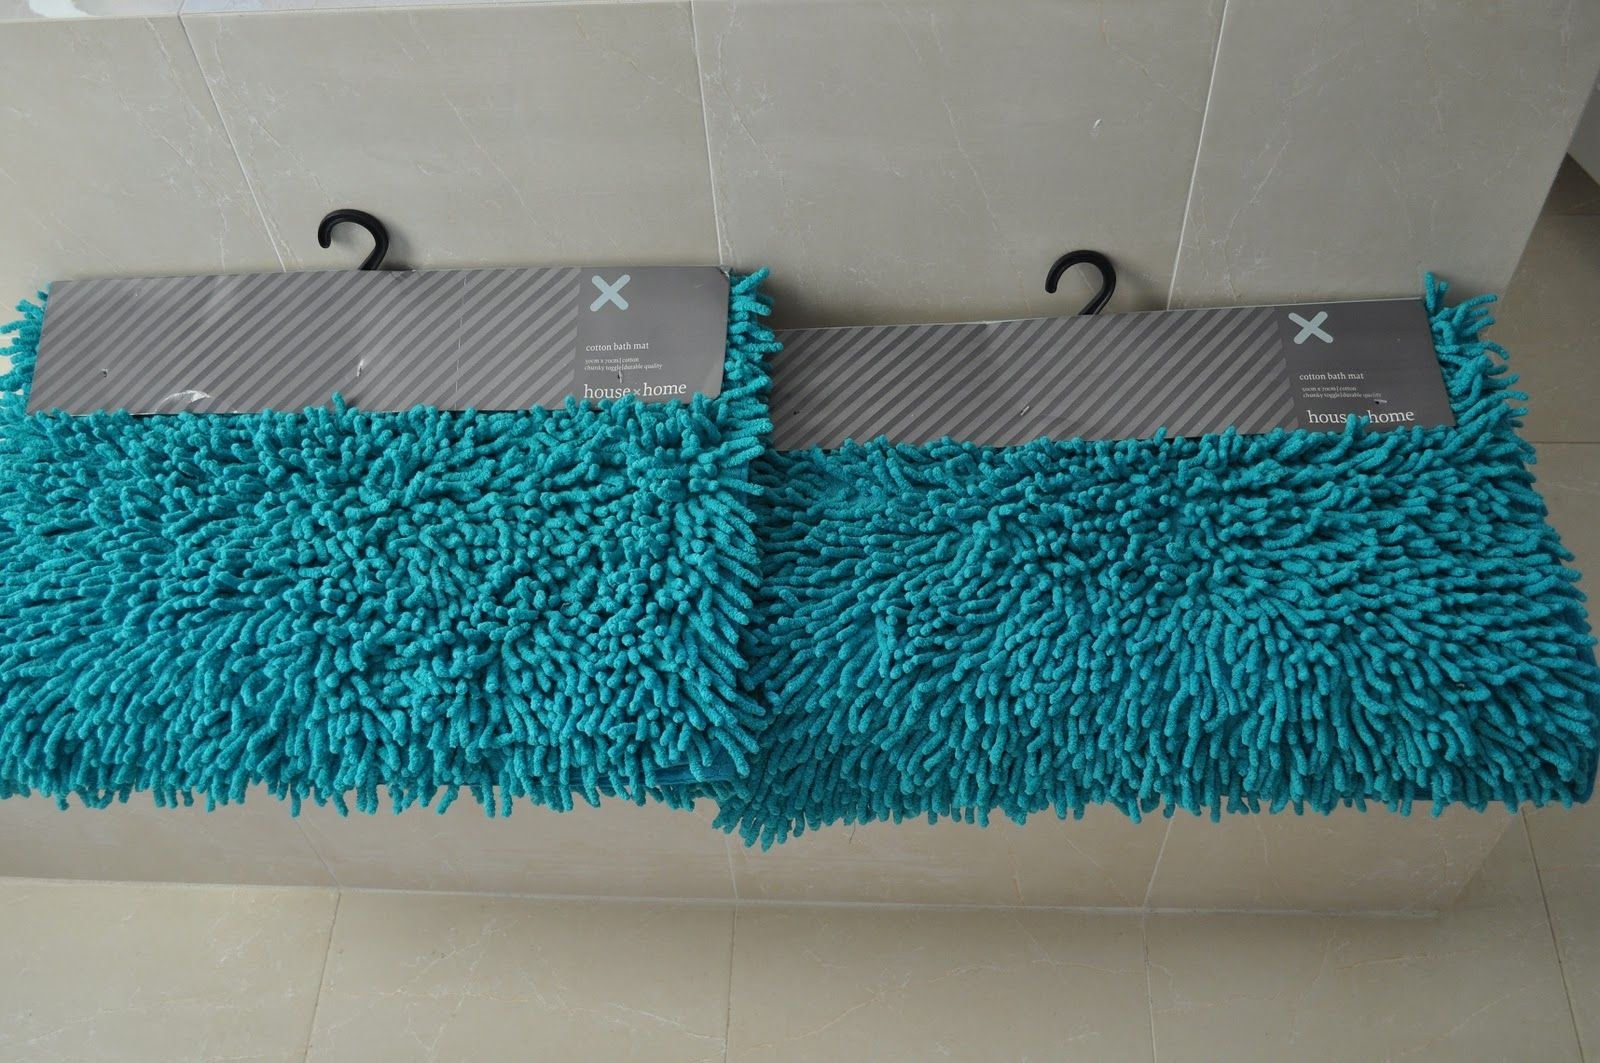 Aqua bathroom rugs - Aqua Bathroom Rugs Ideas